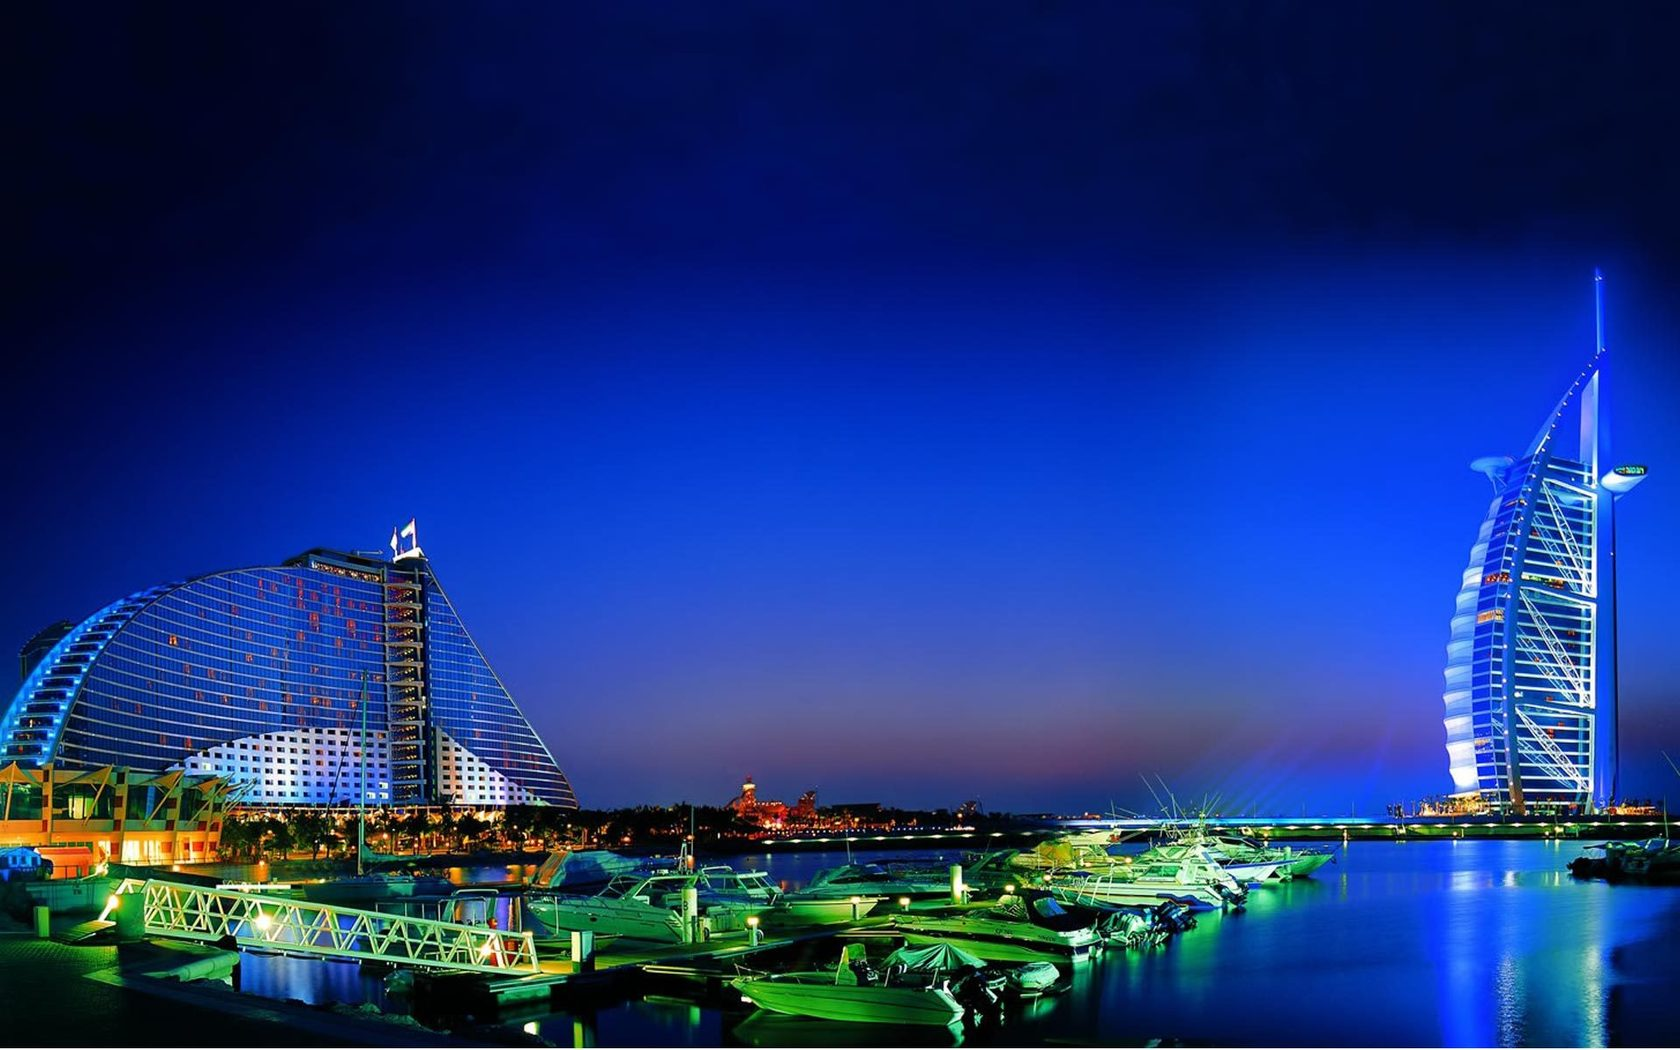 Amazing Wallpaper Night Dubai - dubai-night-view-wallpaper  Graphic-227611.jpg